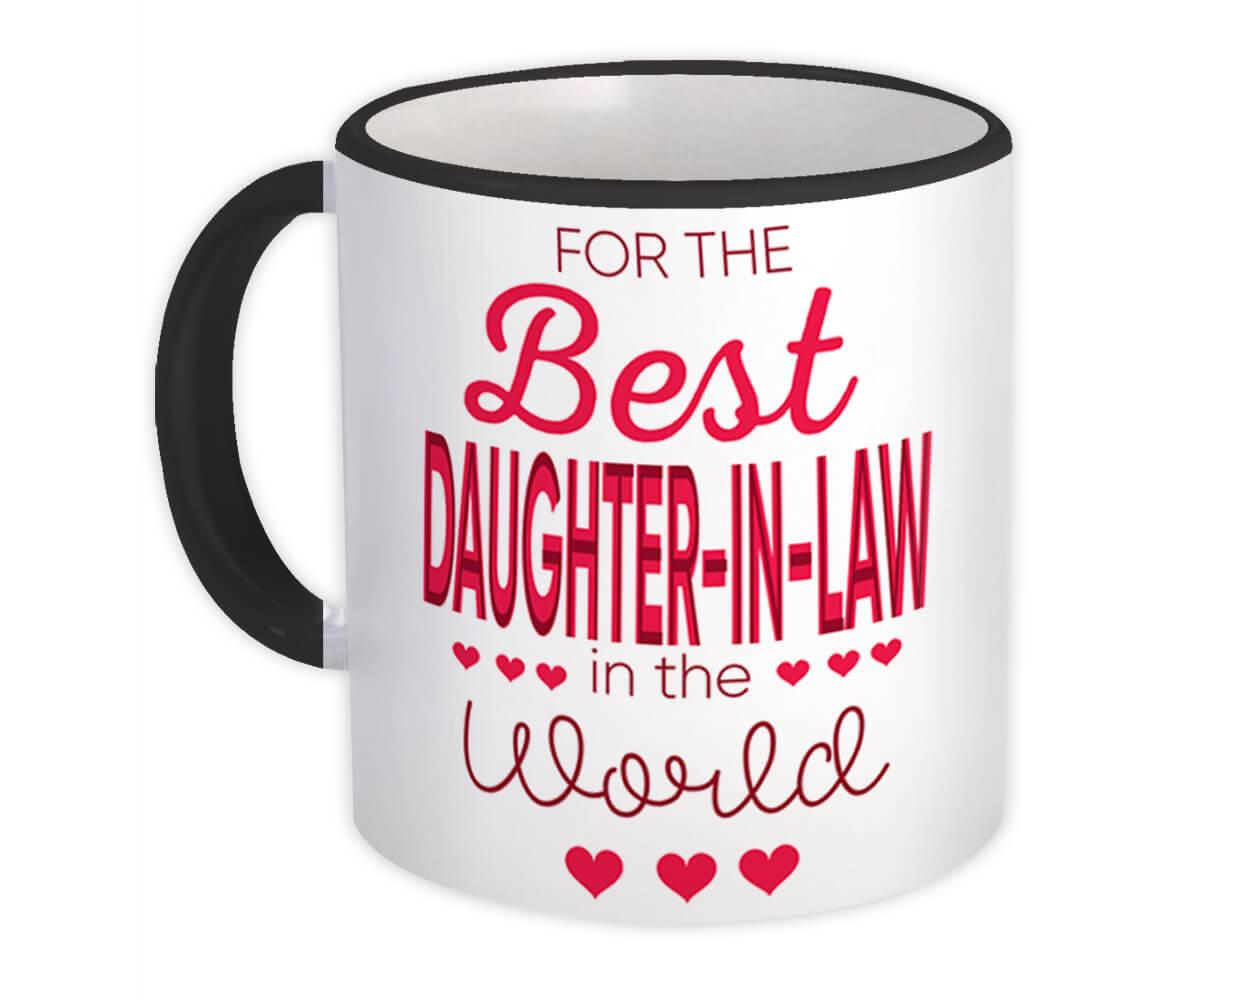 For the Best Daughter in Law in the World : Gift Mug Son Family Love